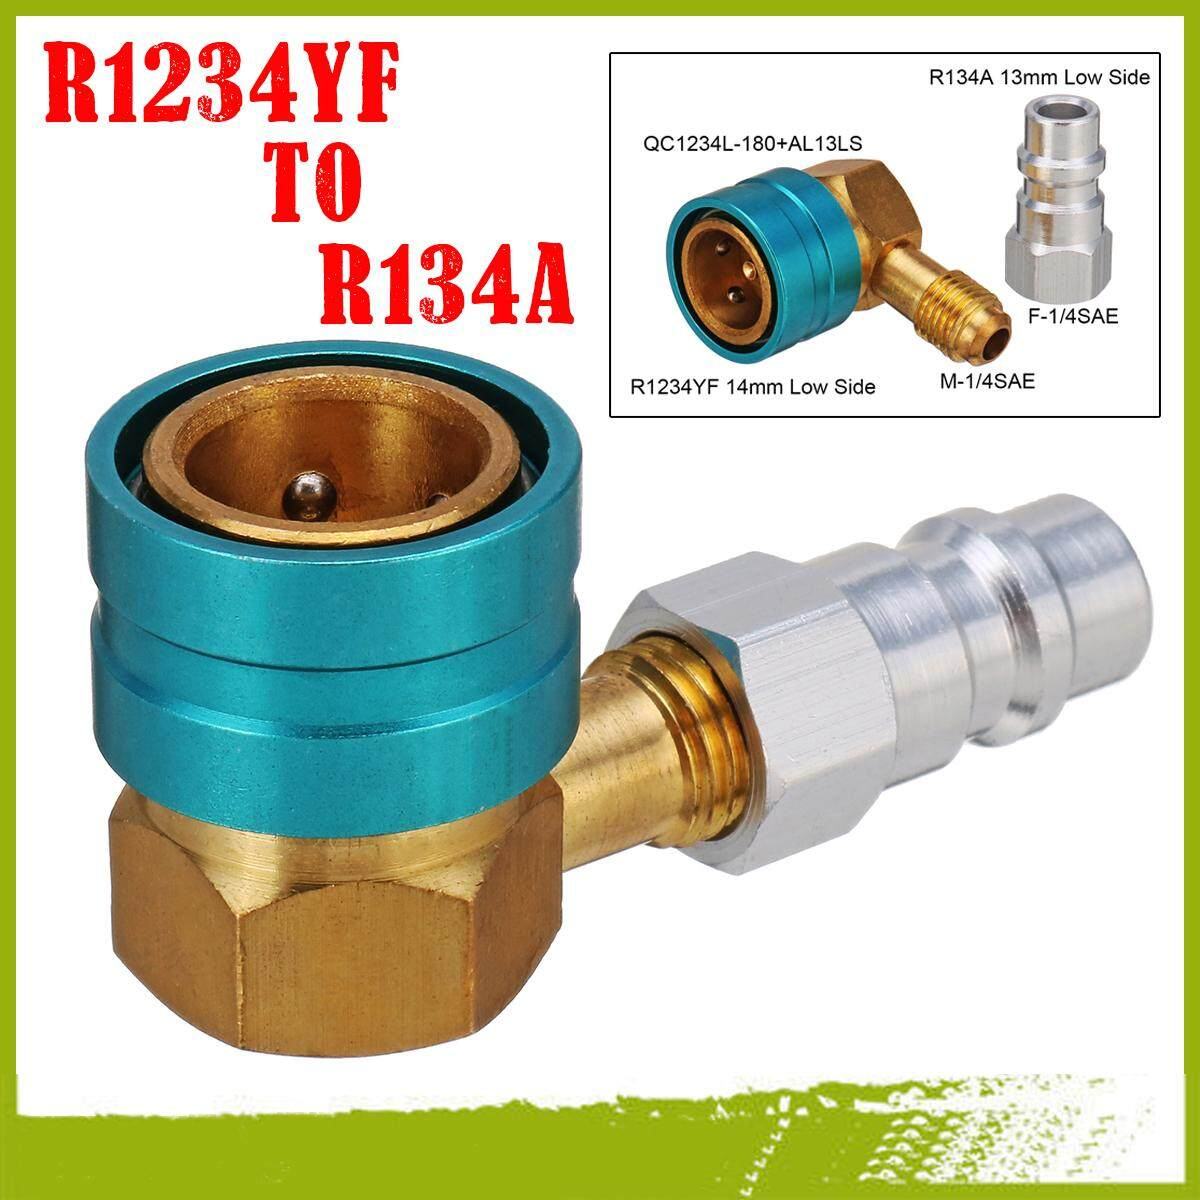 R134 to R1234 Coupler #3630